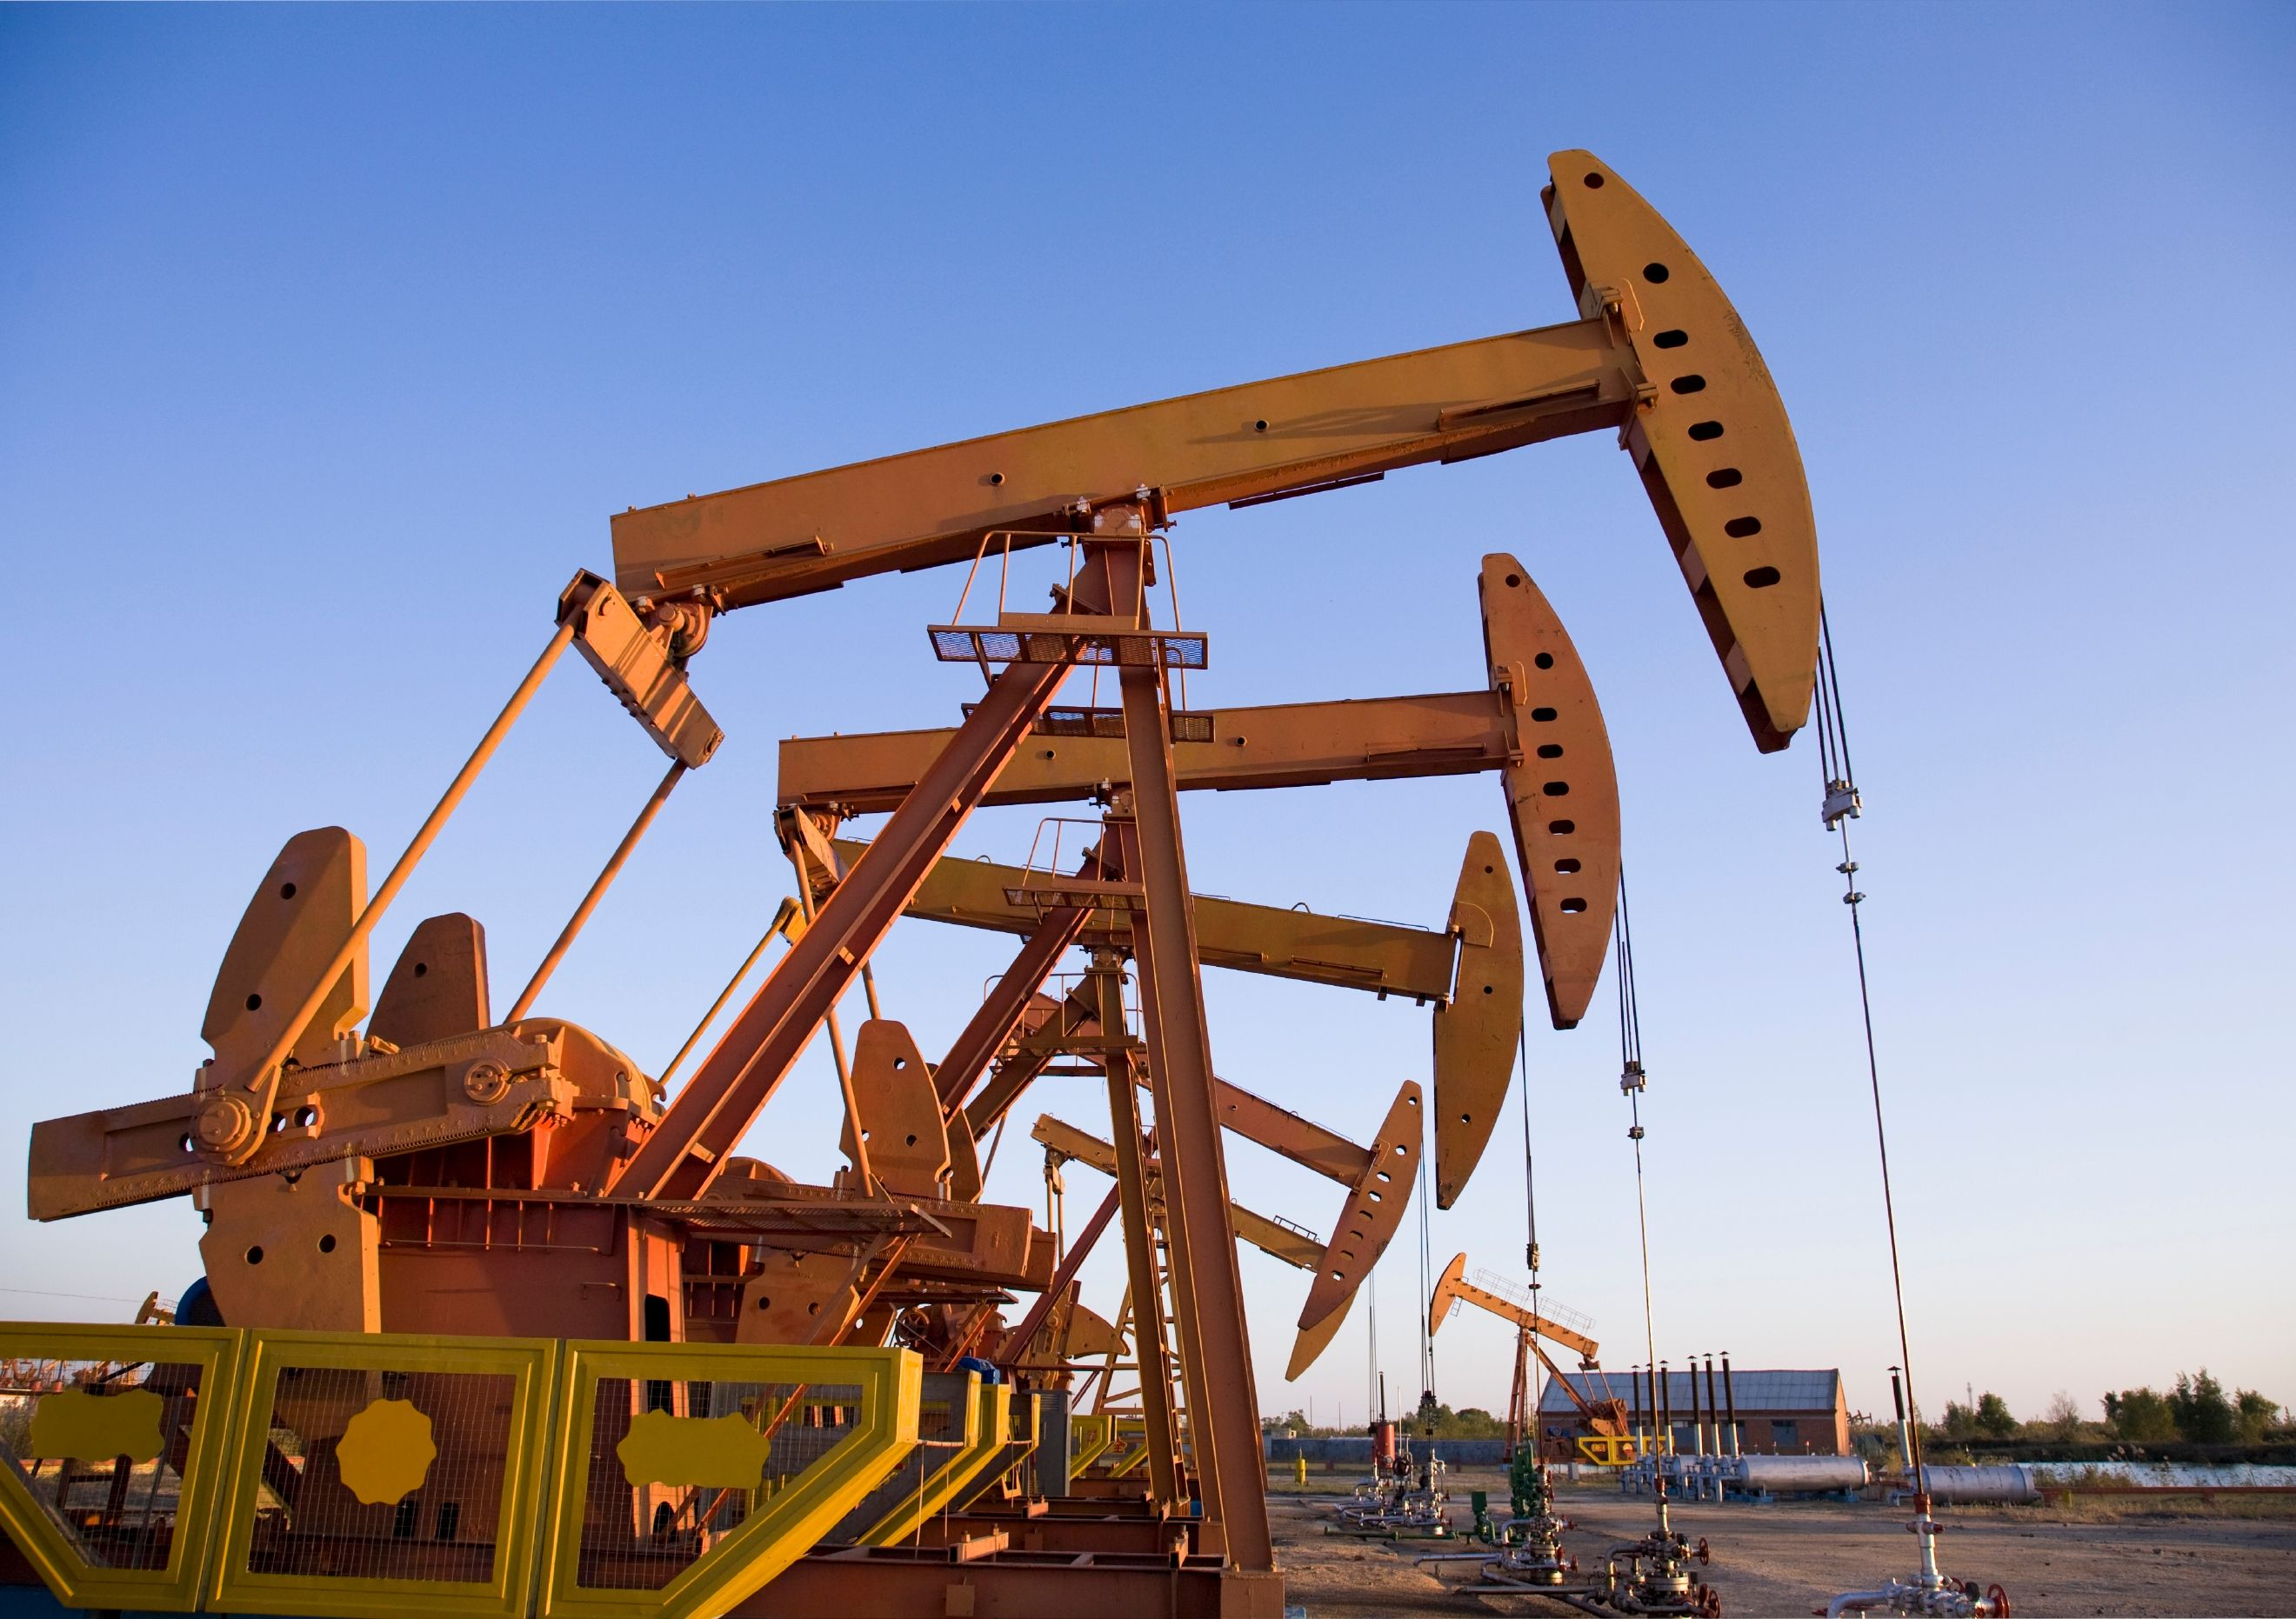 Oilfield Jobs Rig Assistant Corod Odessa Tx: Drilling Rigs - Istock 000011117442large